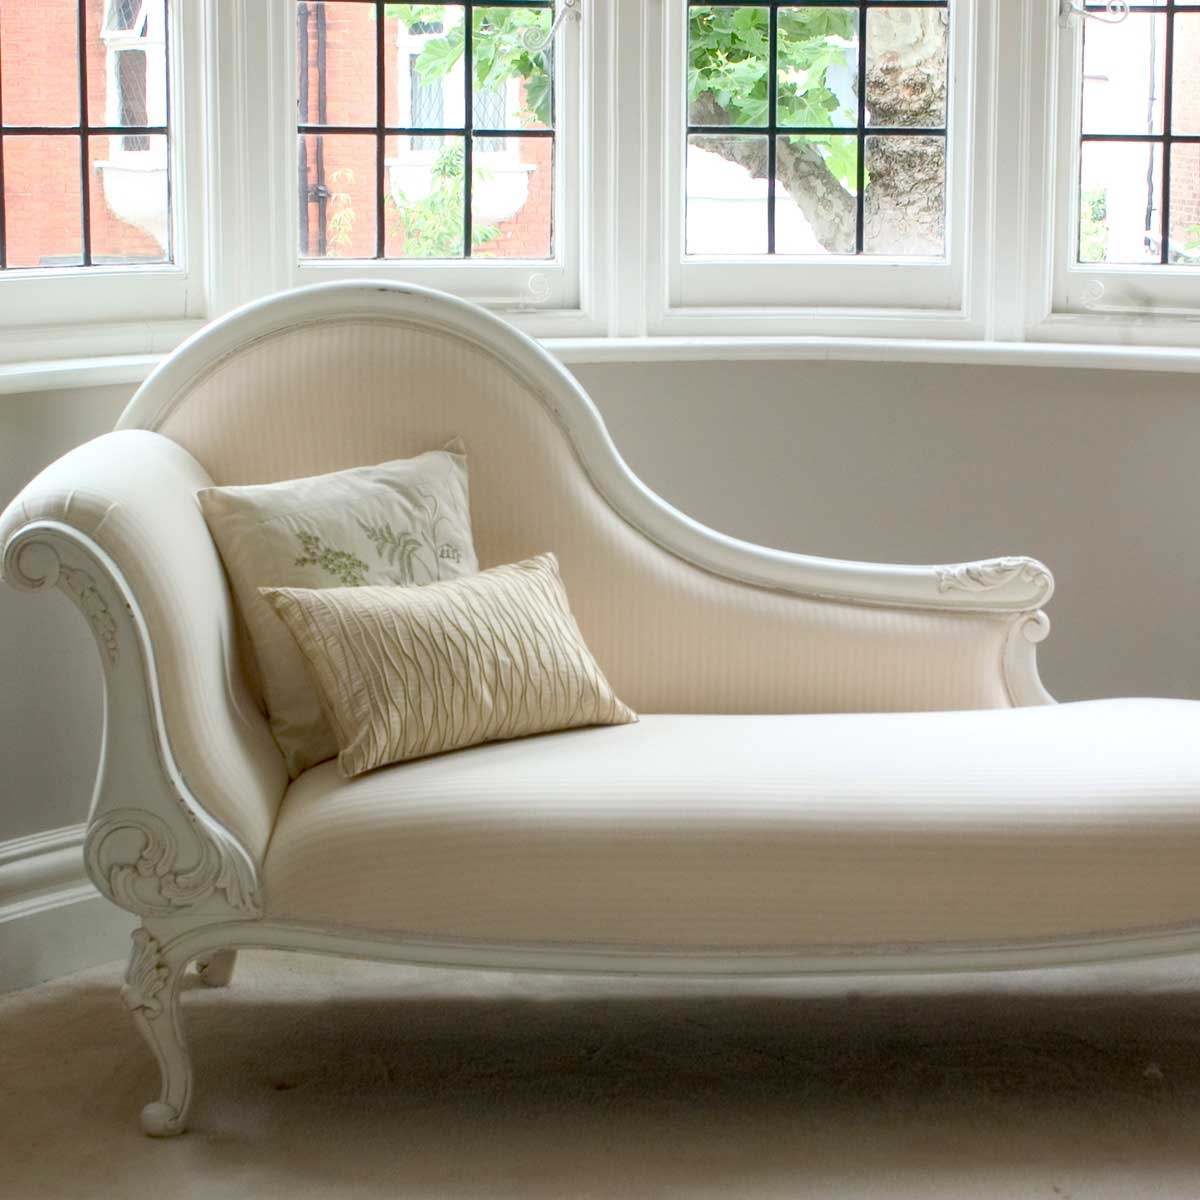 Bedroom Chaise Lounge 2 Projects To Try Pinterest Chaise Regarding Bedroom Sofa Chairs (Photo 7 of 15)